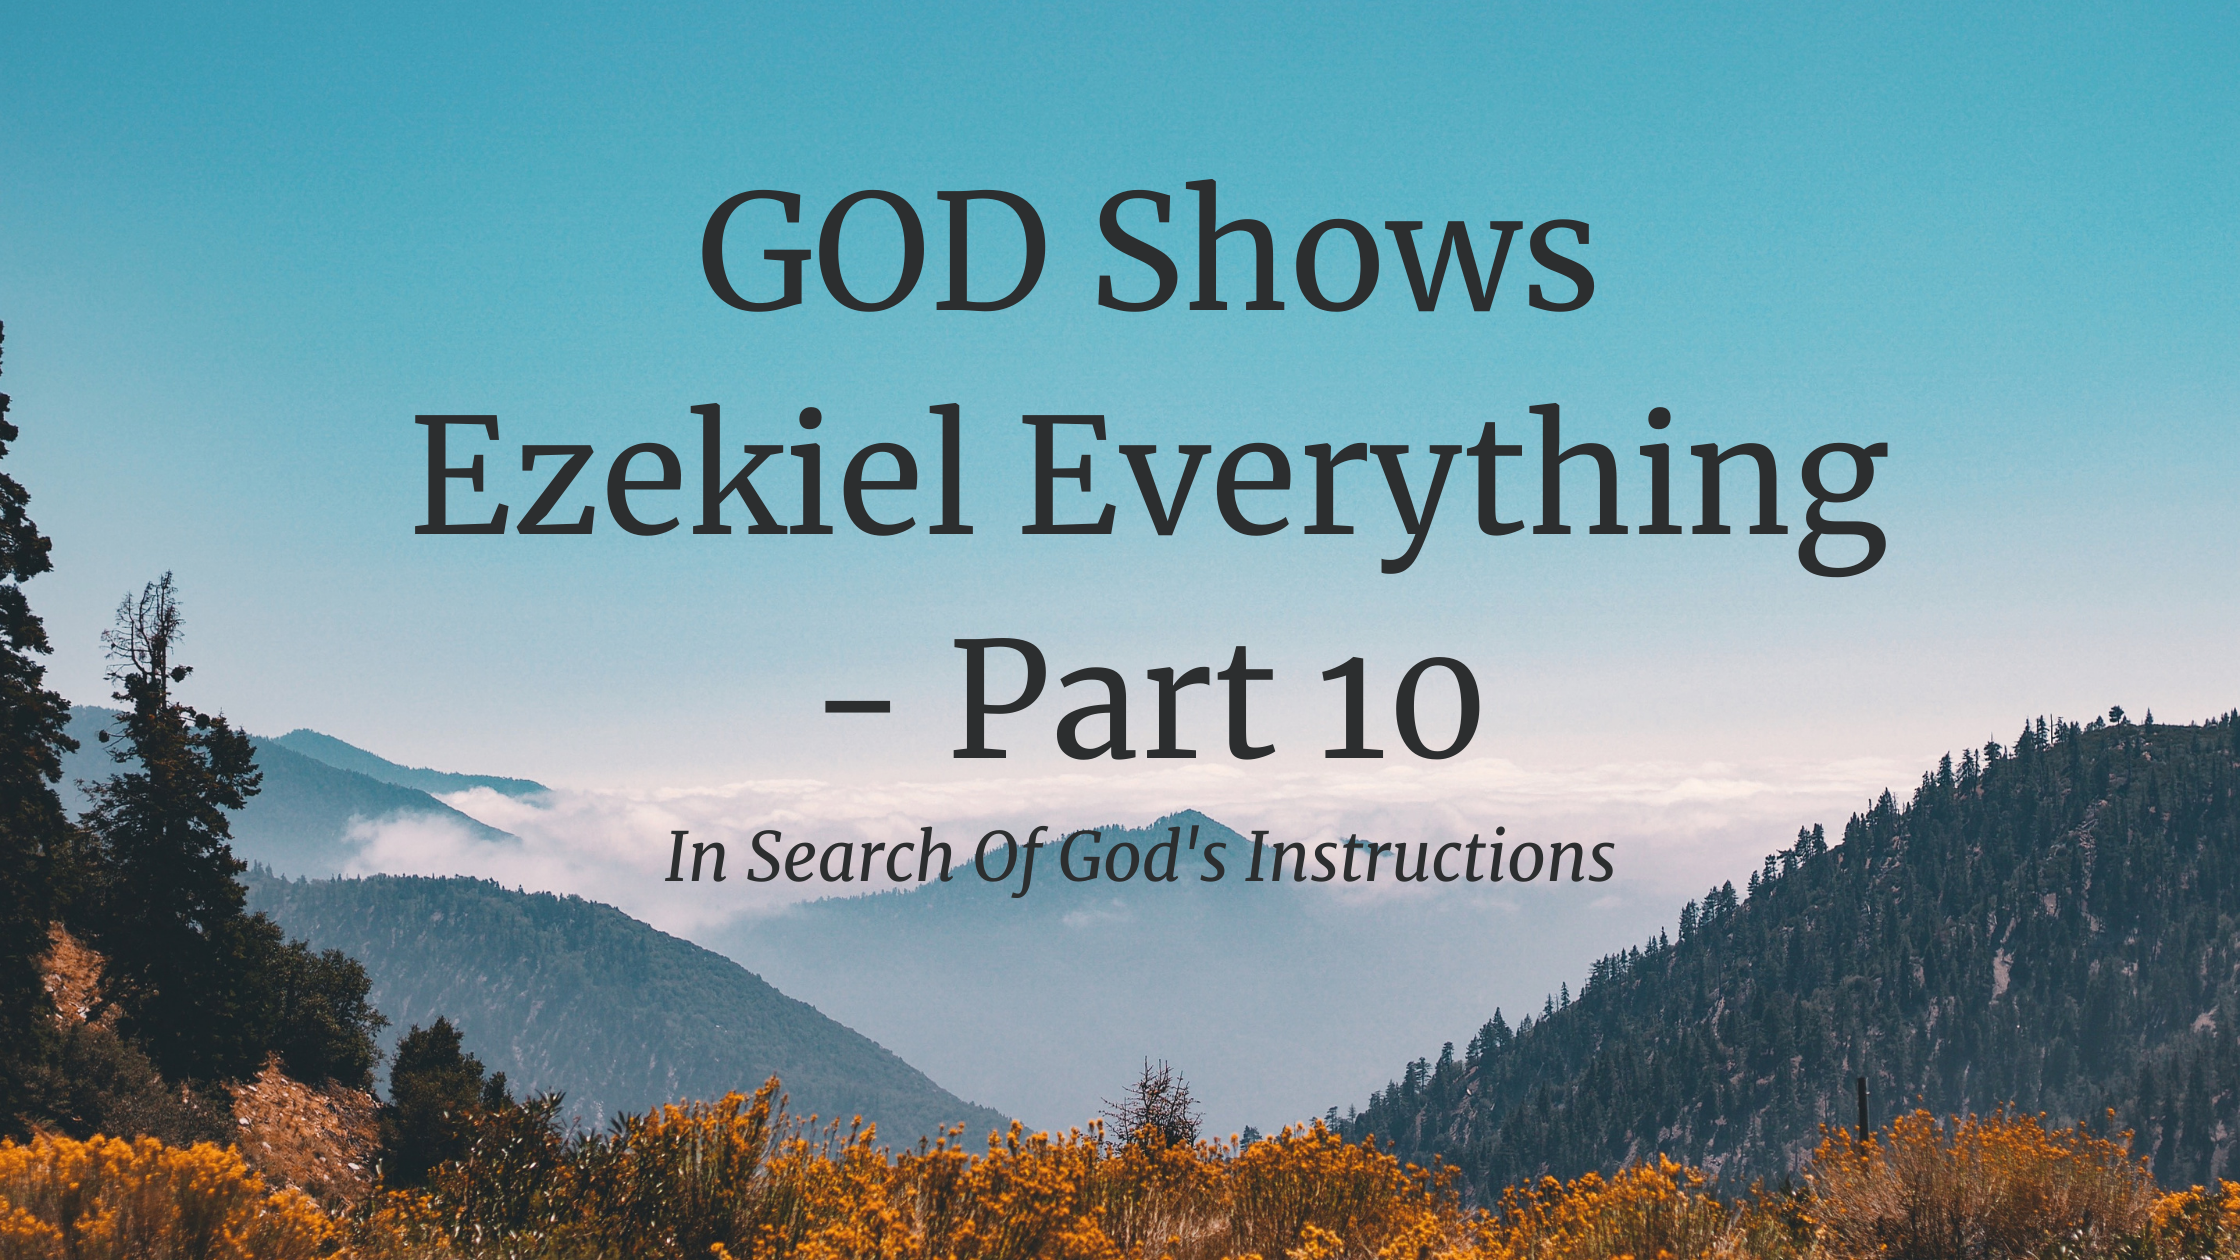 GOD Shows Ezekiel Everything – Part 10